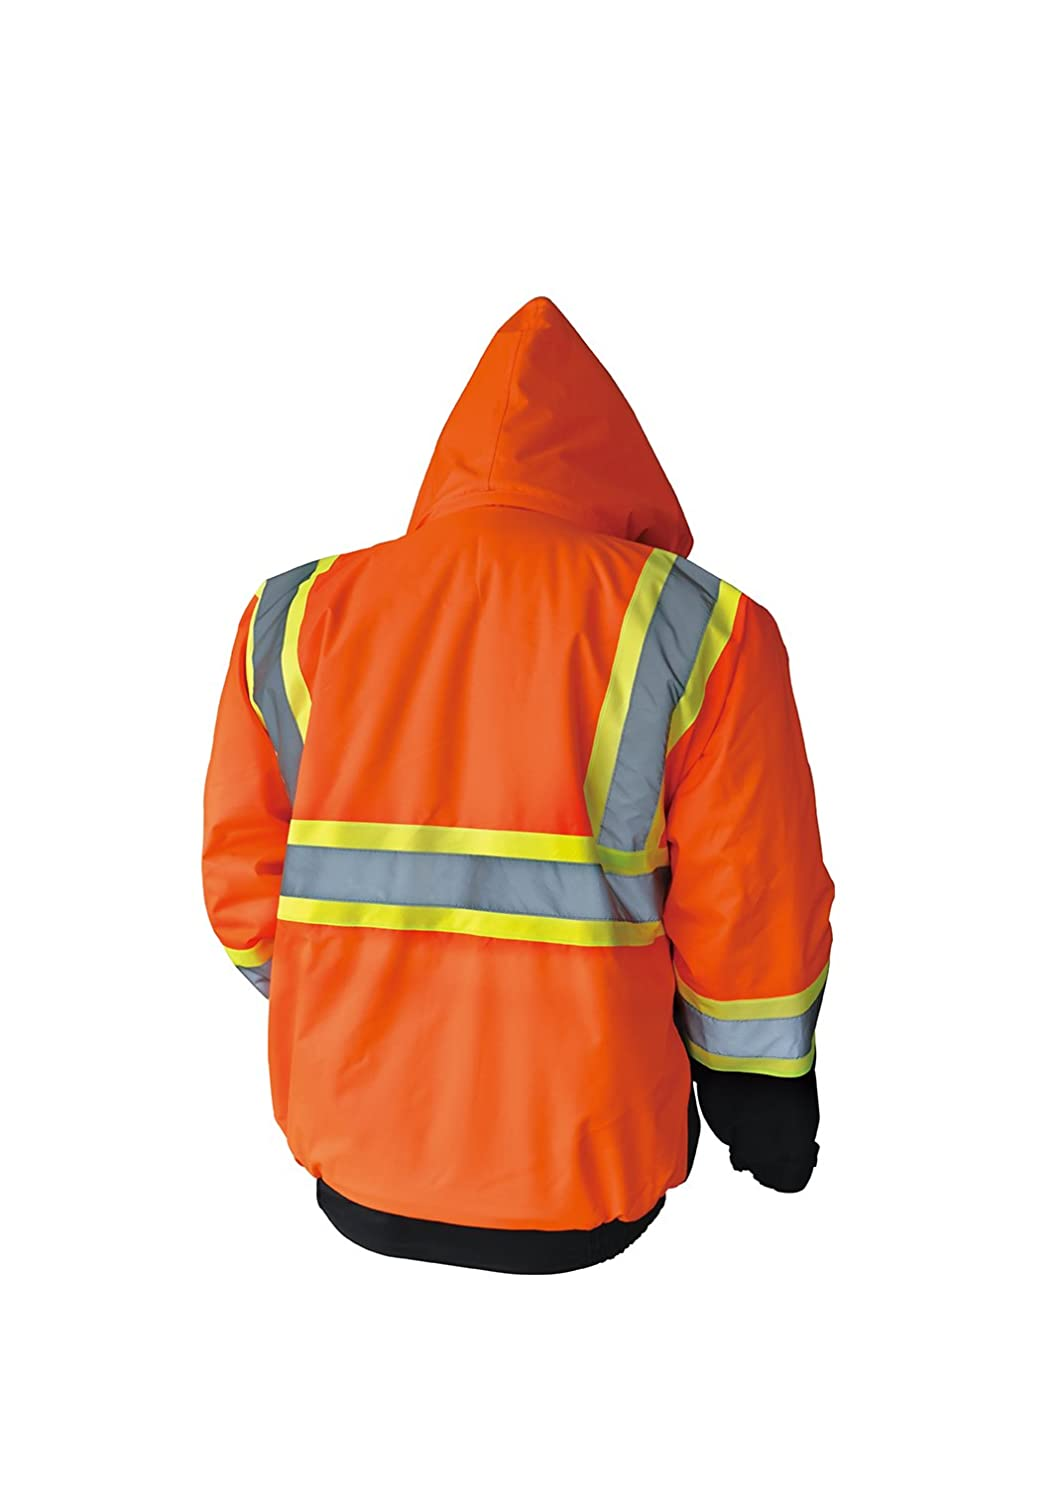 LM High Visibility Class III Reflective Waterproof Bomber Jacket W//Removable Hood